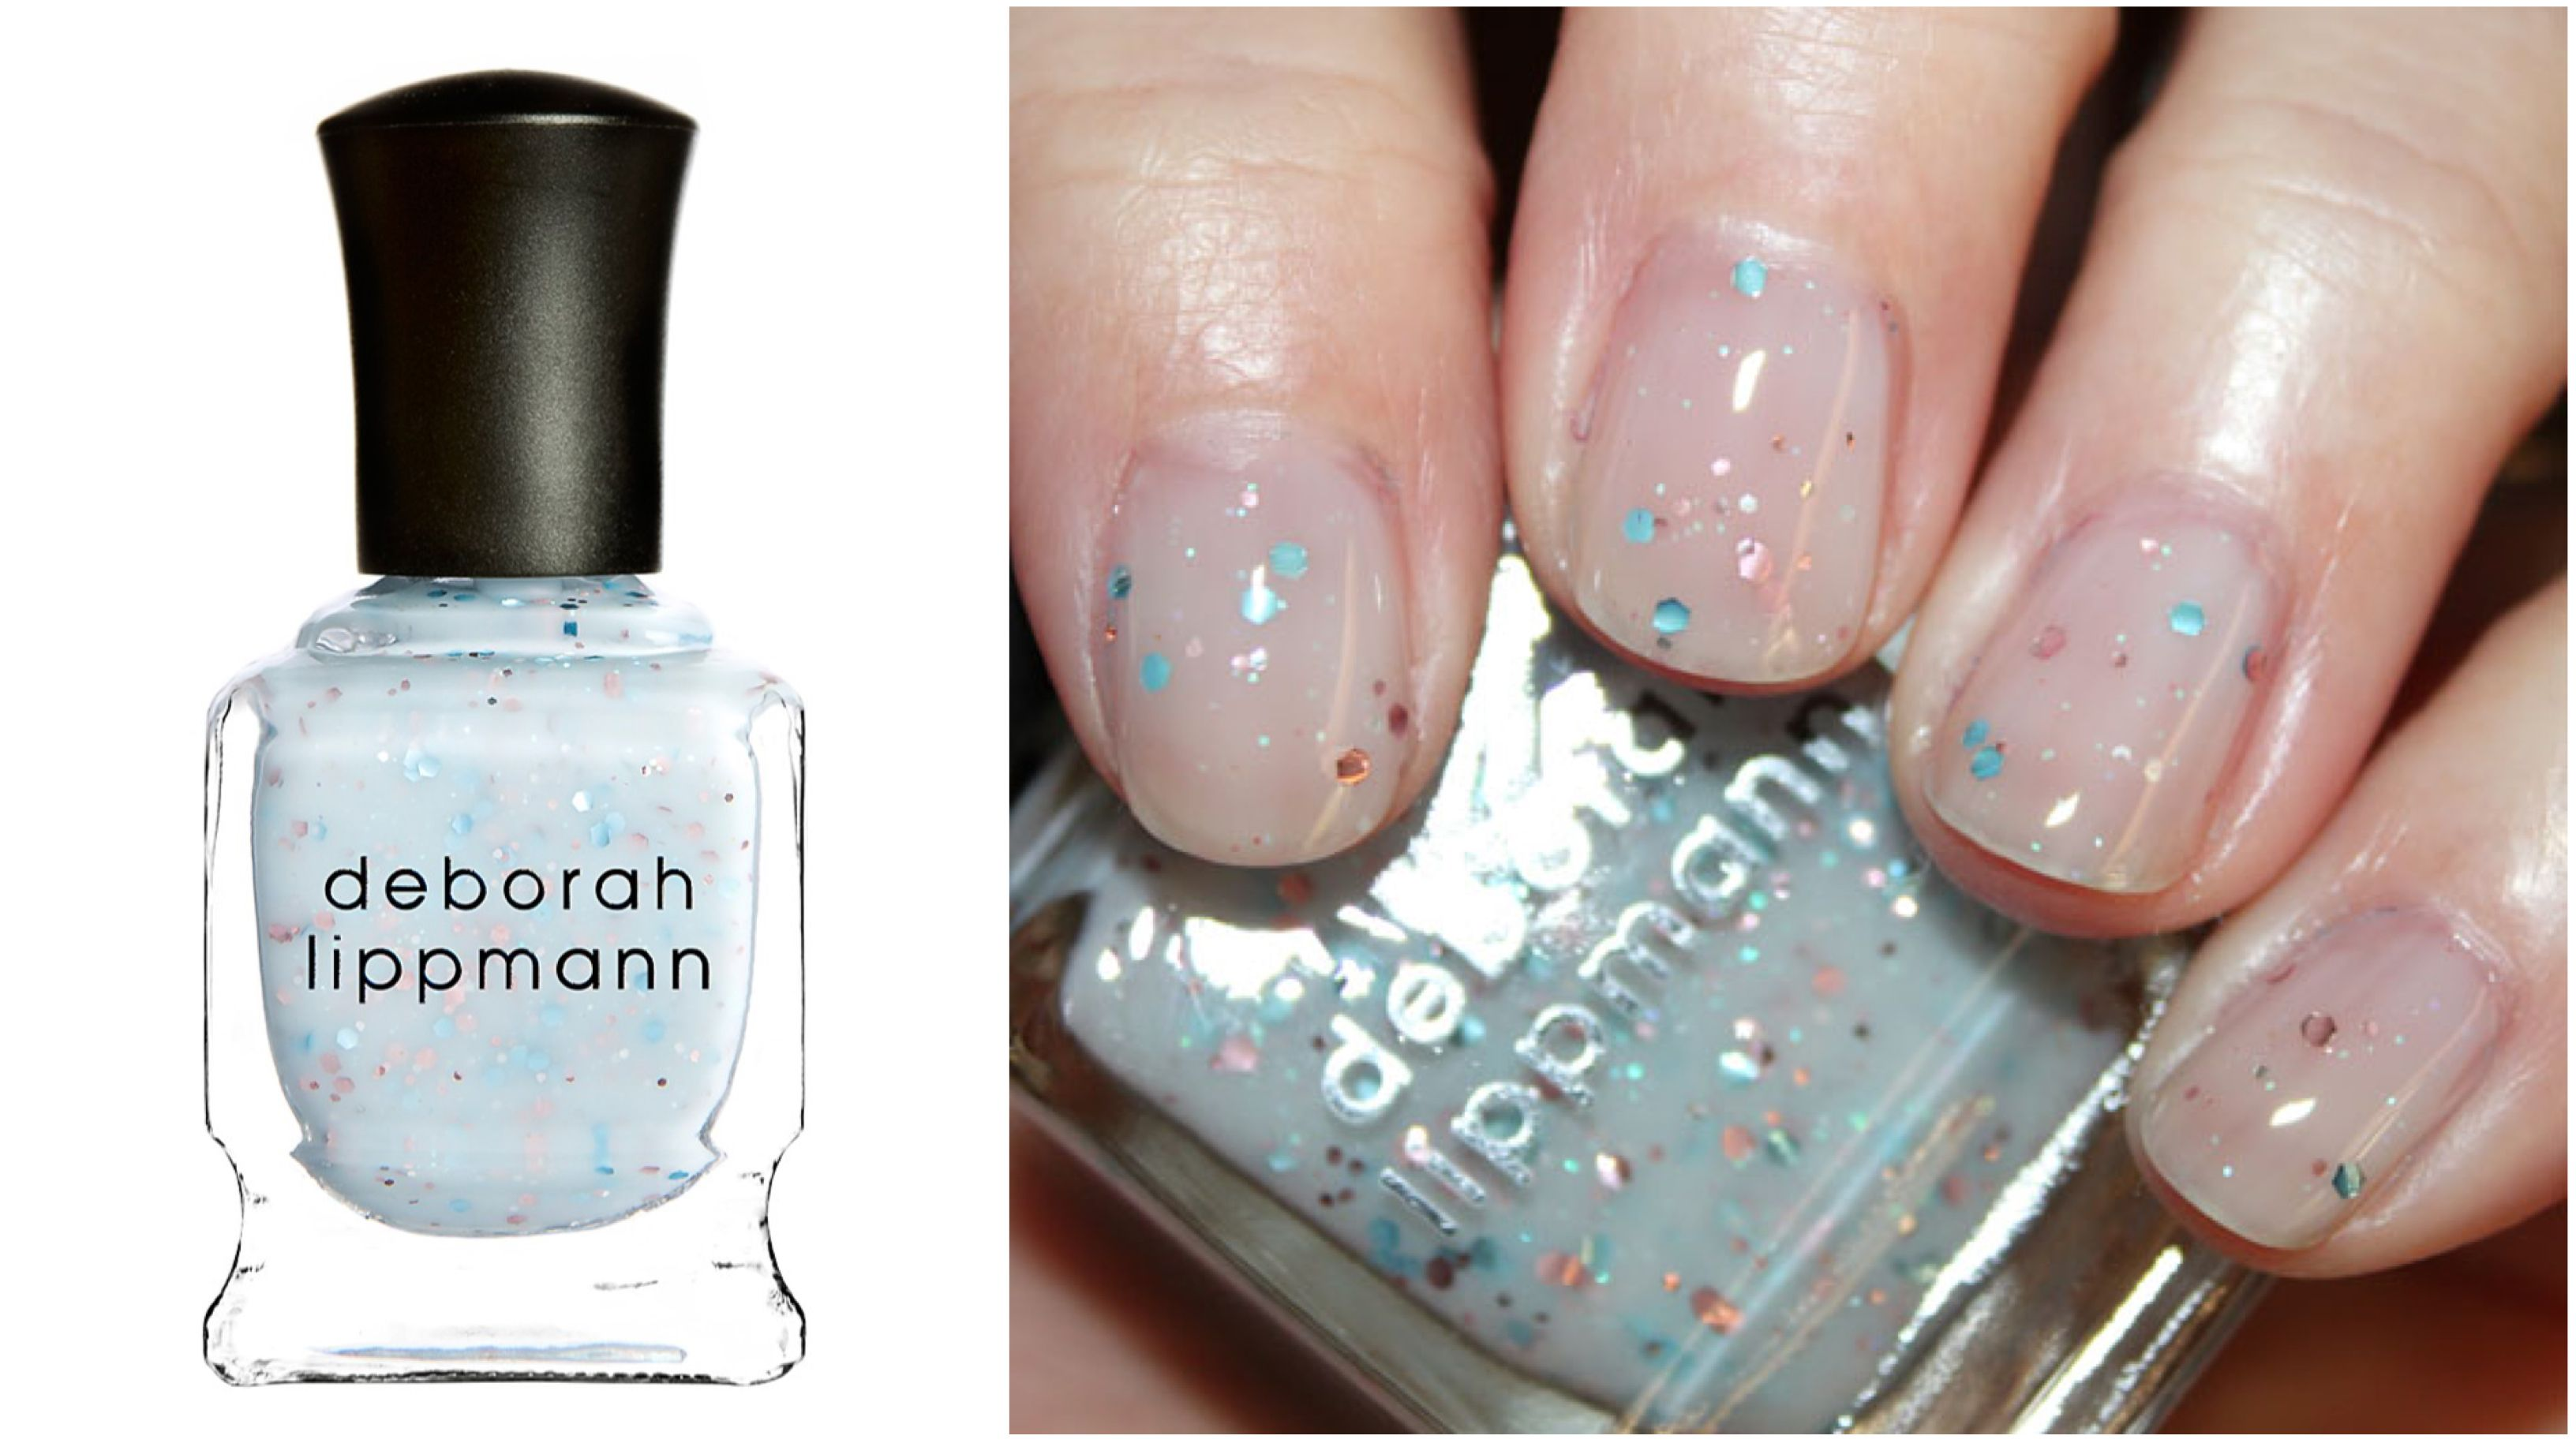 Deborah Lippmann \'Glitter in the Air\' | Deborah Lippmann | Pinterest ...